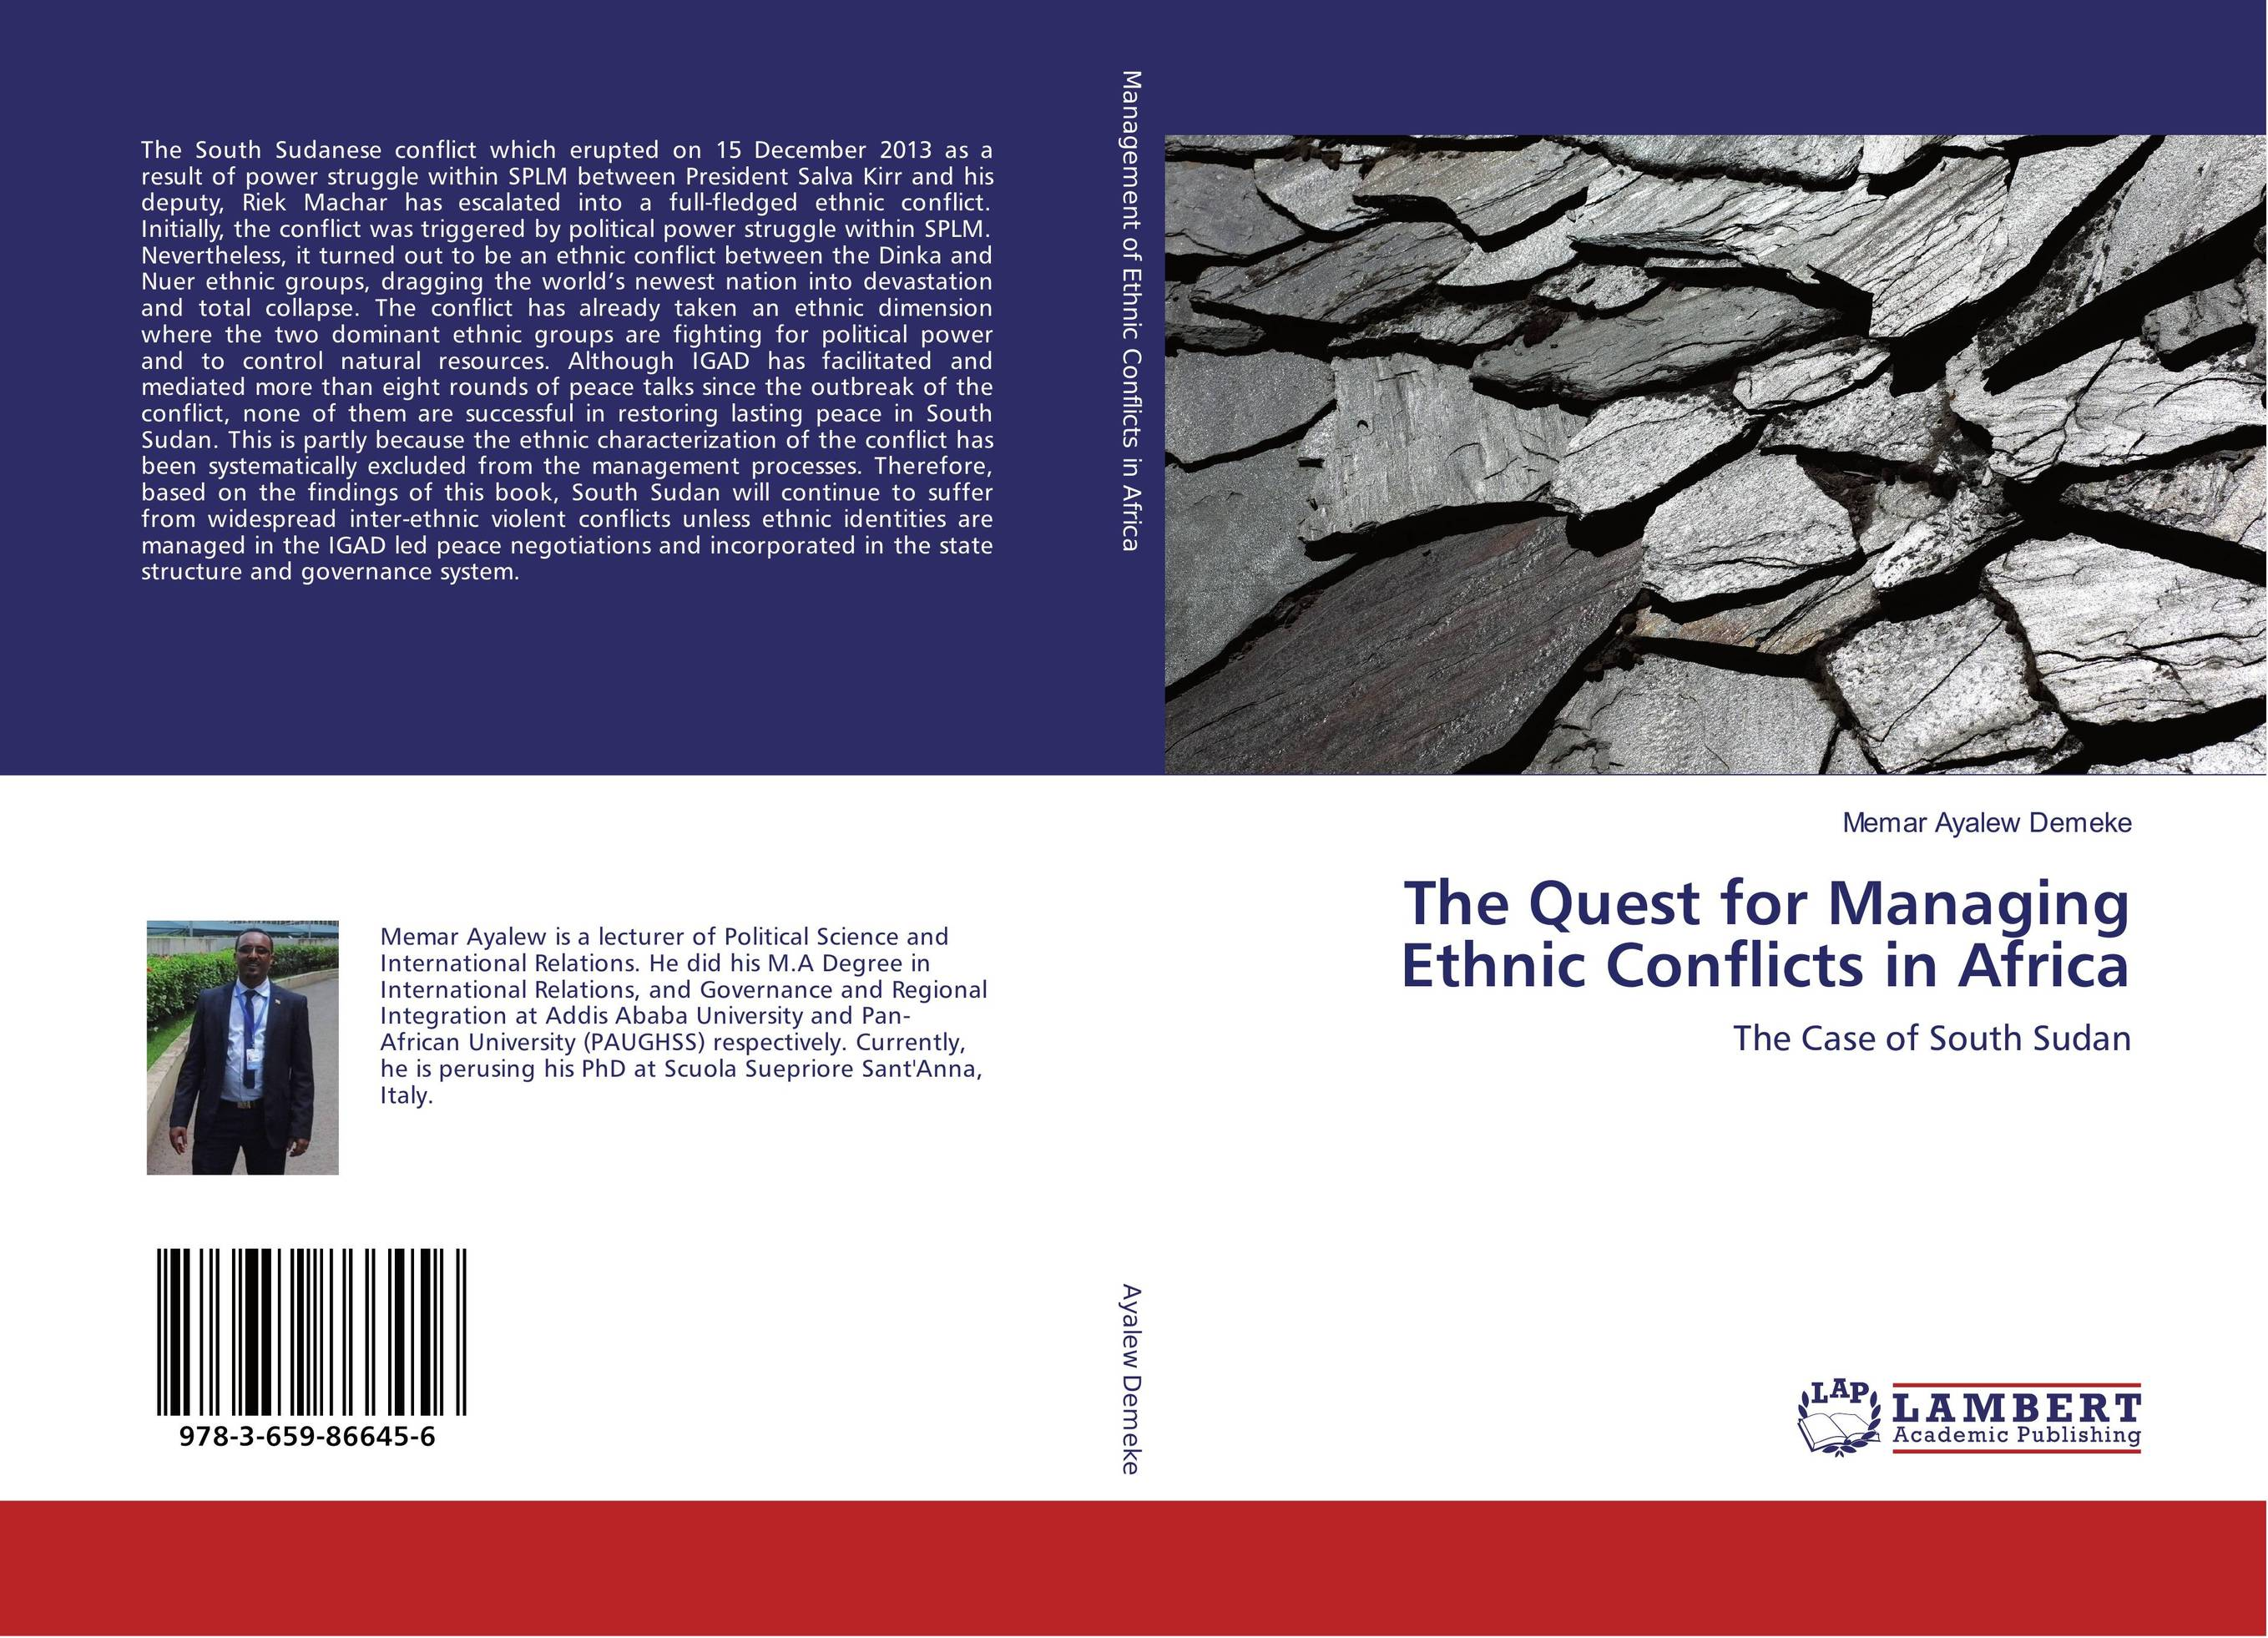 The Quest for Managing Ethnic Conflicts in Africa trans border ethnic hegemony and political conflict in africa